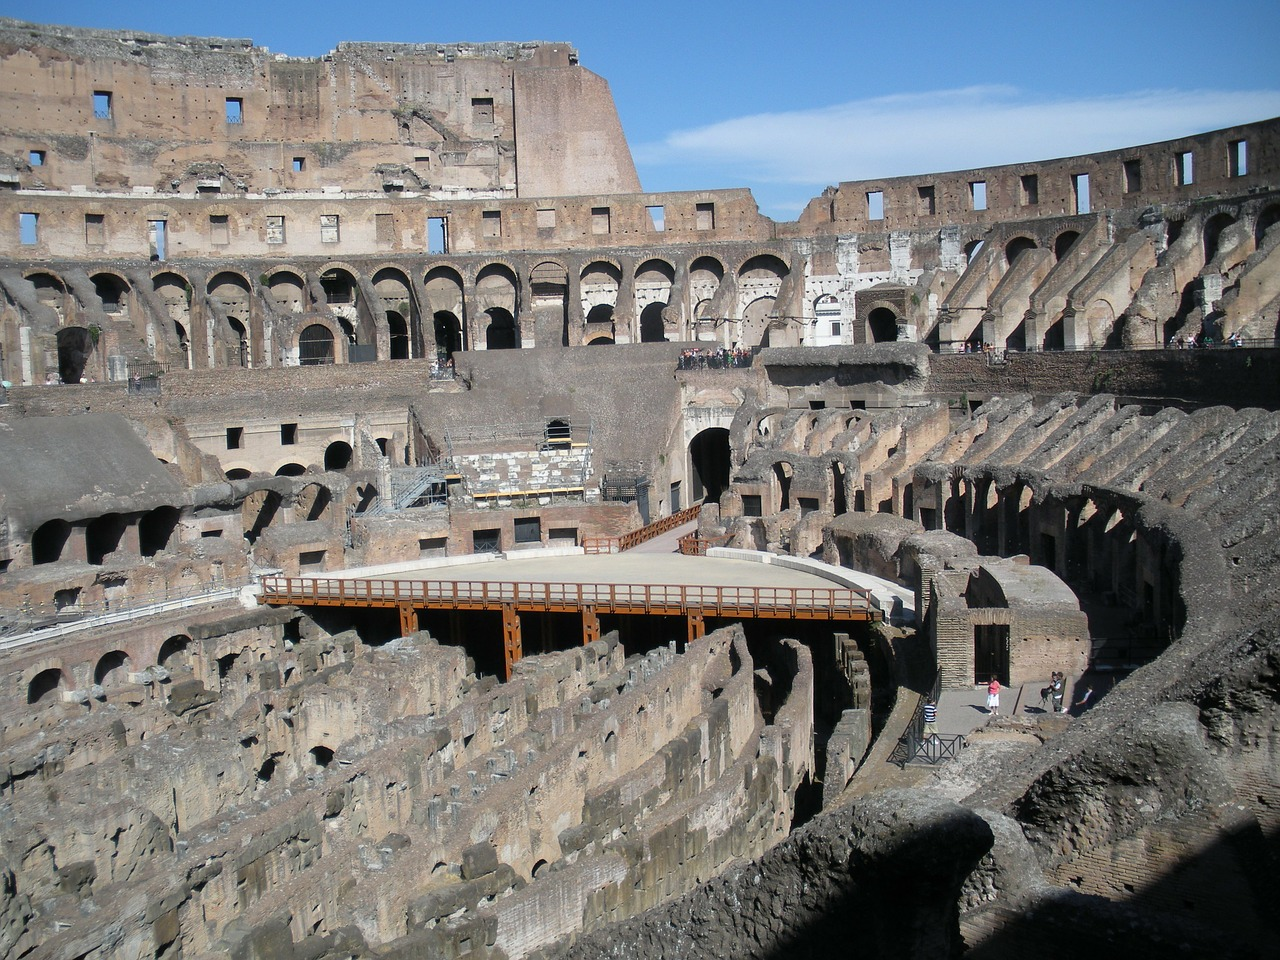 colosseum,rome,italy,landmark,architecture,travel,roman,tourism,famous,history,roma,amphitheater,ruin,monument,historic,archaeology,historical,arena,free pictures, free photos, free images, royalty free, free illustrations, public domain